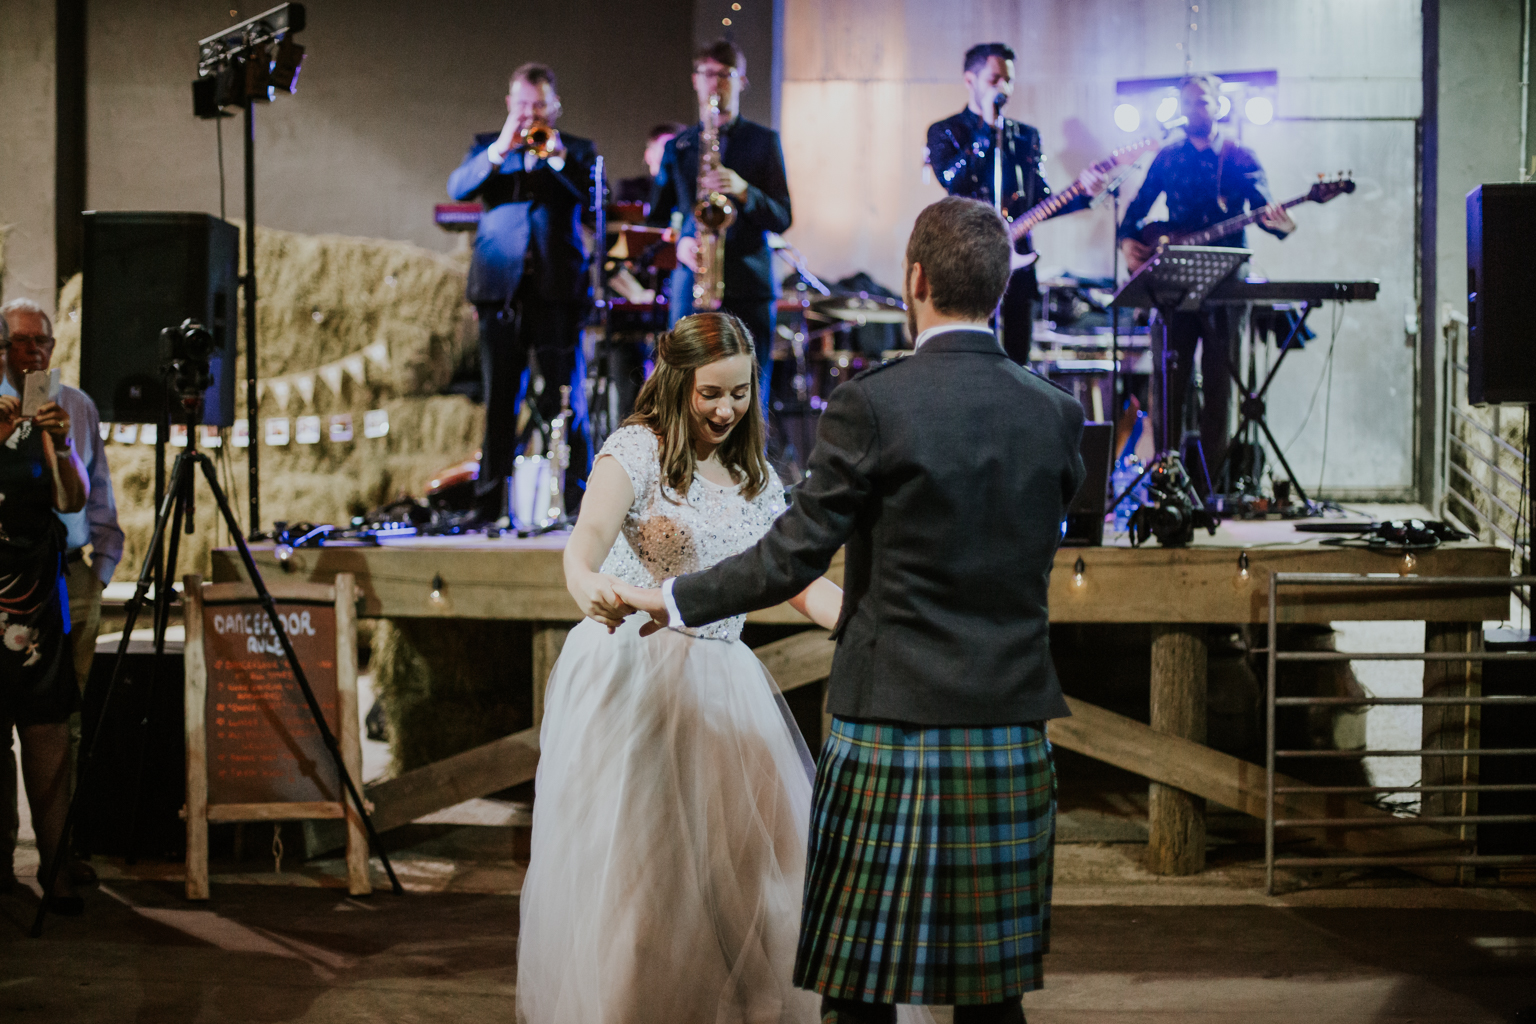 First dance as a husband and wife at Harelaw farm DIY wedding in Ayrshire. The wedding band is Nick Bruce and his Blinding Light.